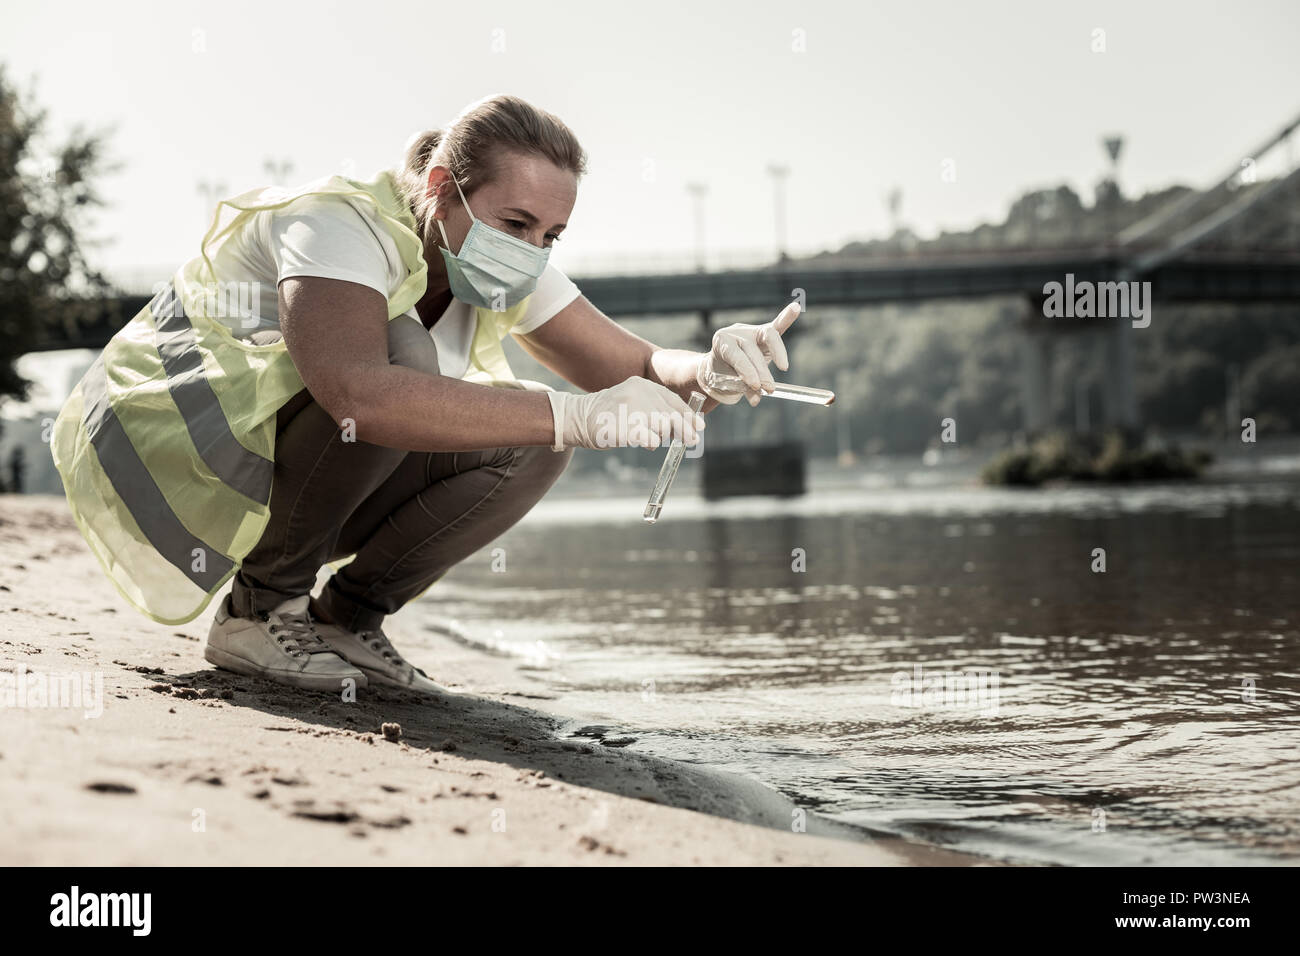 Sanitary inspector holding test tubes while checking water contamination level - Stock Image